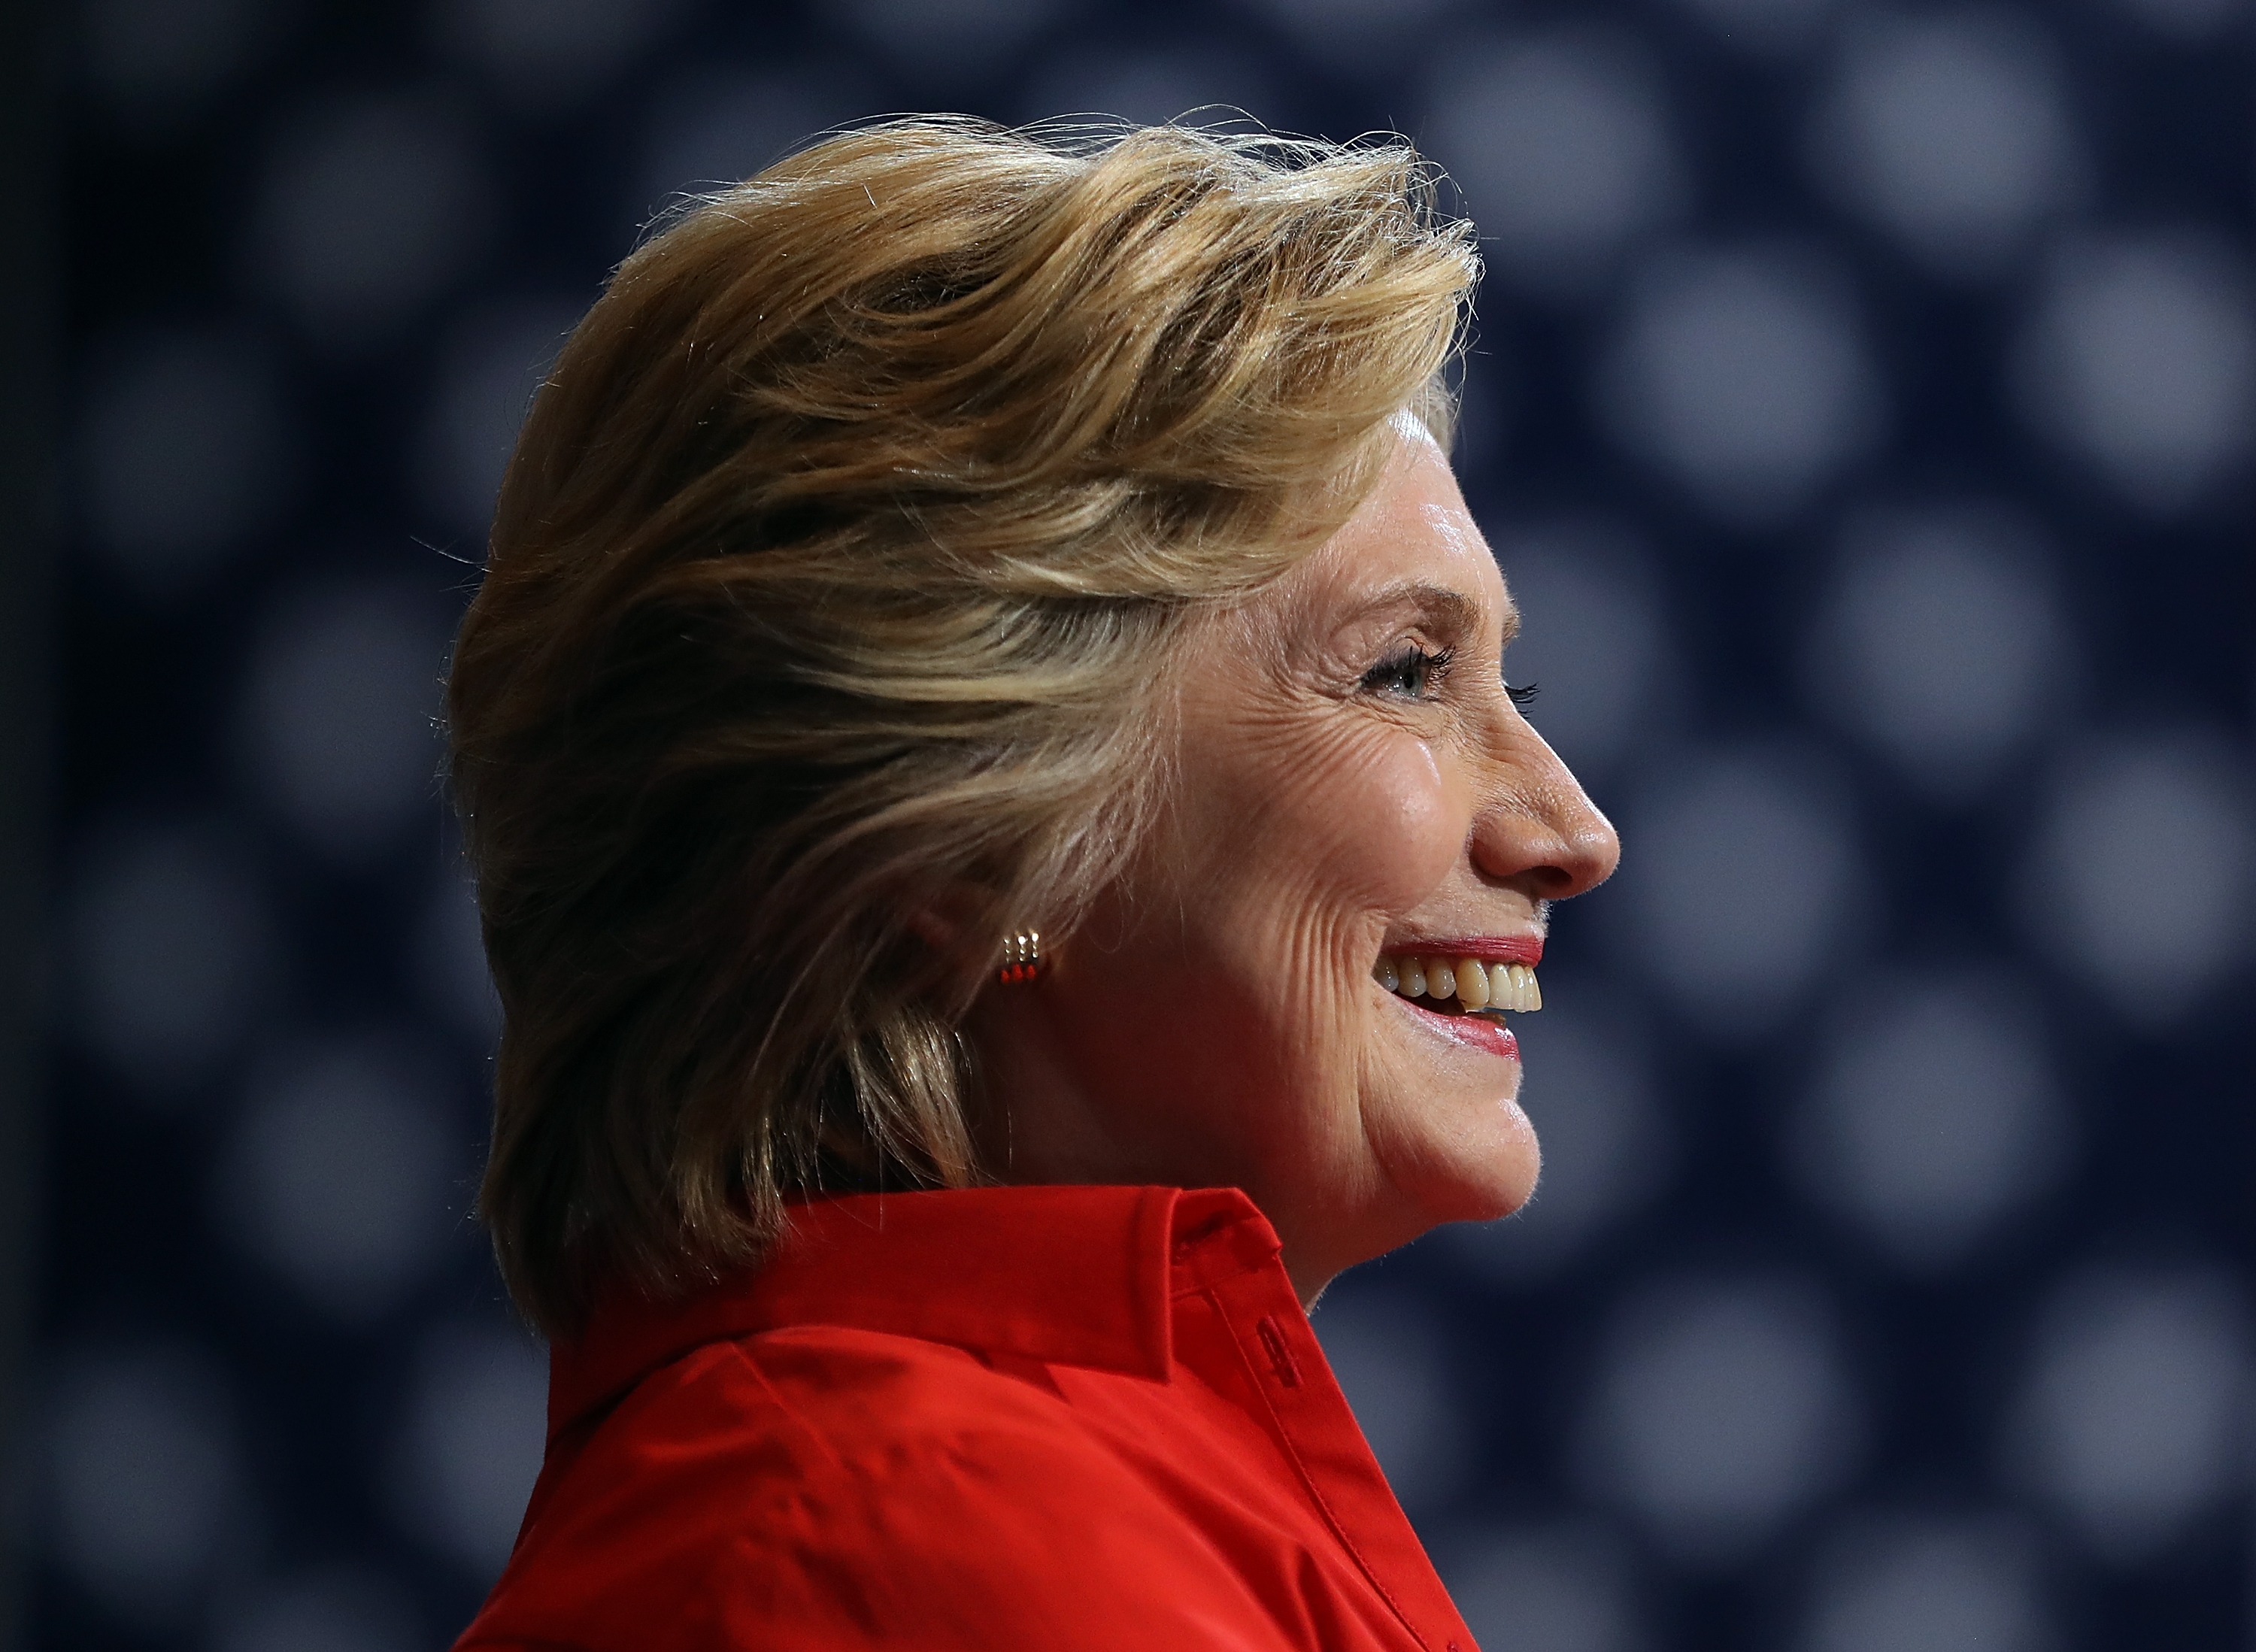 Hillary Clinton looks on during a campaign rally on July 30, 2016 in Pittsburgh, PA.